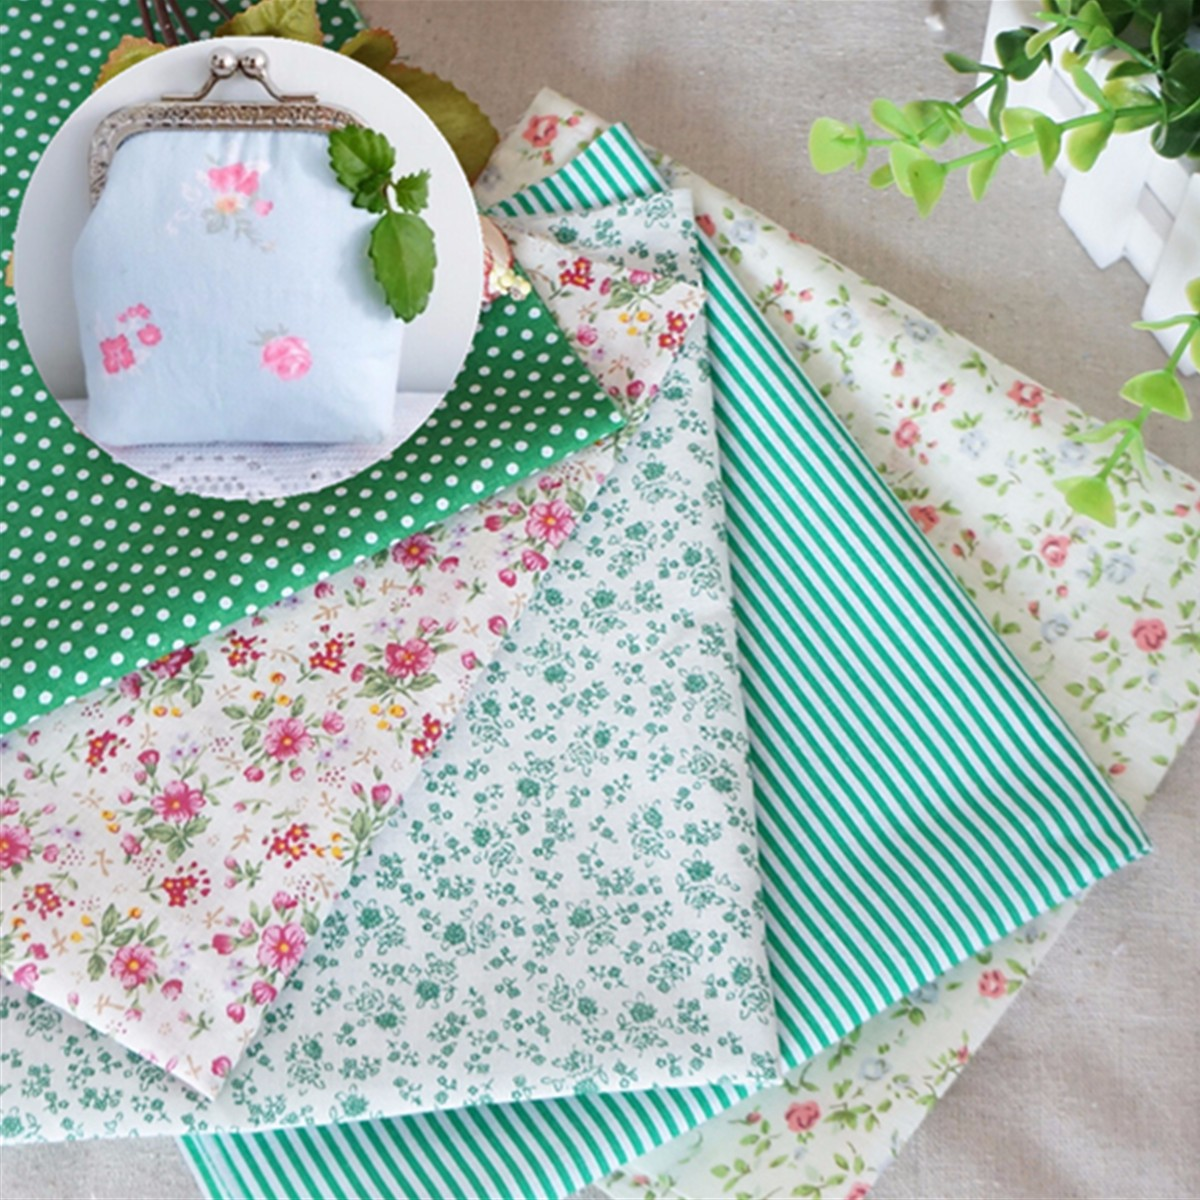 16Pcs/Set Quilting Fabric Floral Cotton Cloth DIY Craft Sewing Handmade Accessory 25 x 40cm Christmas Gift DIY Material